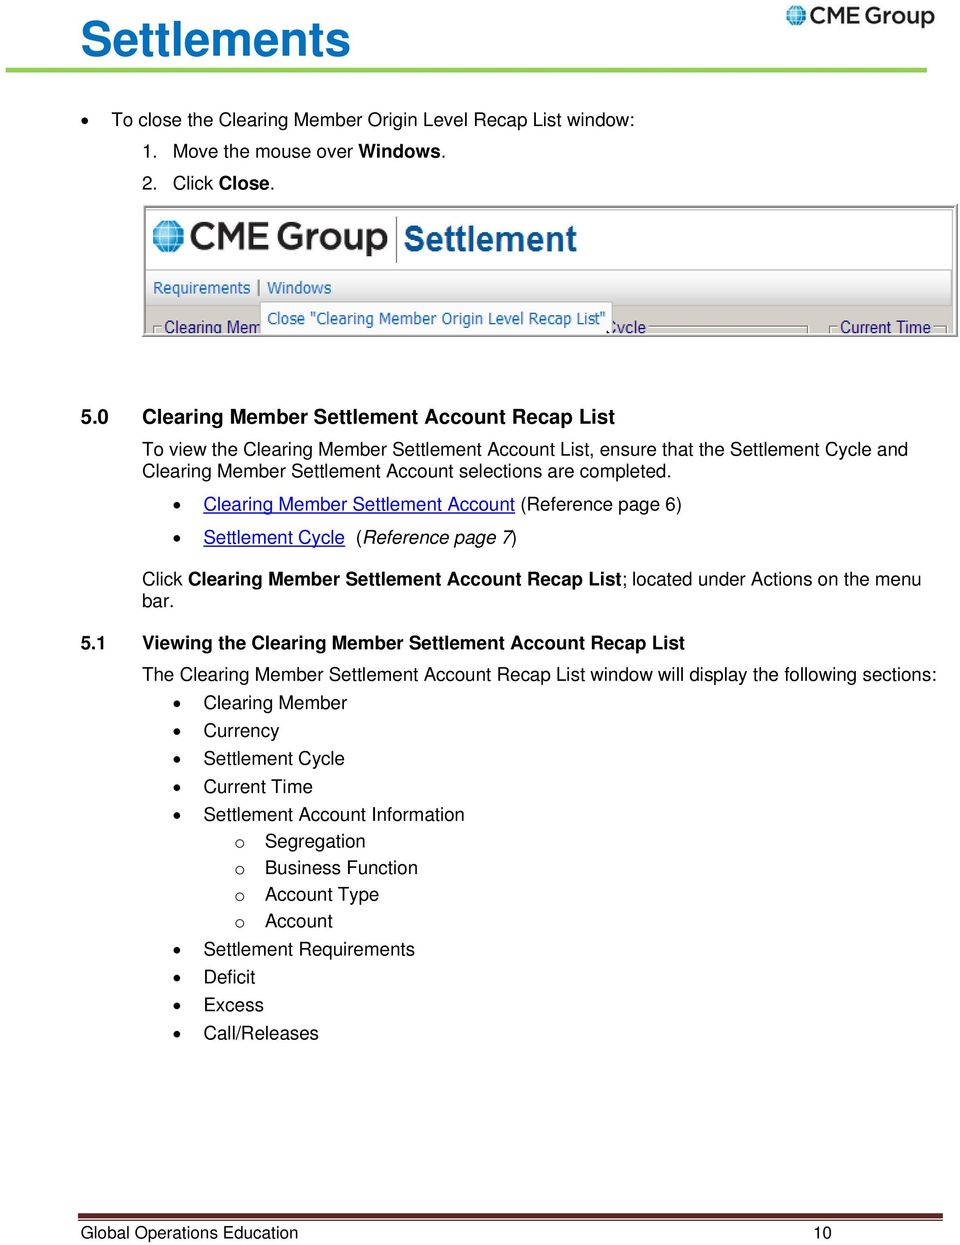 Clearing Member Settlement Account (Reference page 6) Settlement Cycle (Reference page 7) Click Clearing Member Settlement Account Recap List; located under Actions on the menu bar. 5.